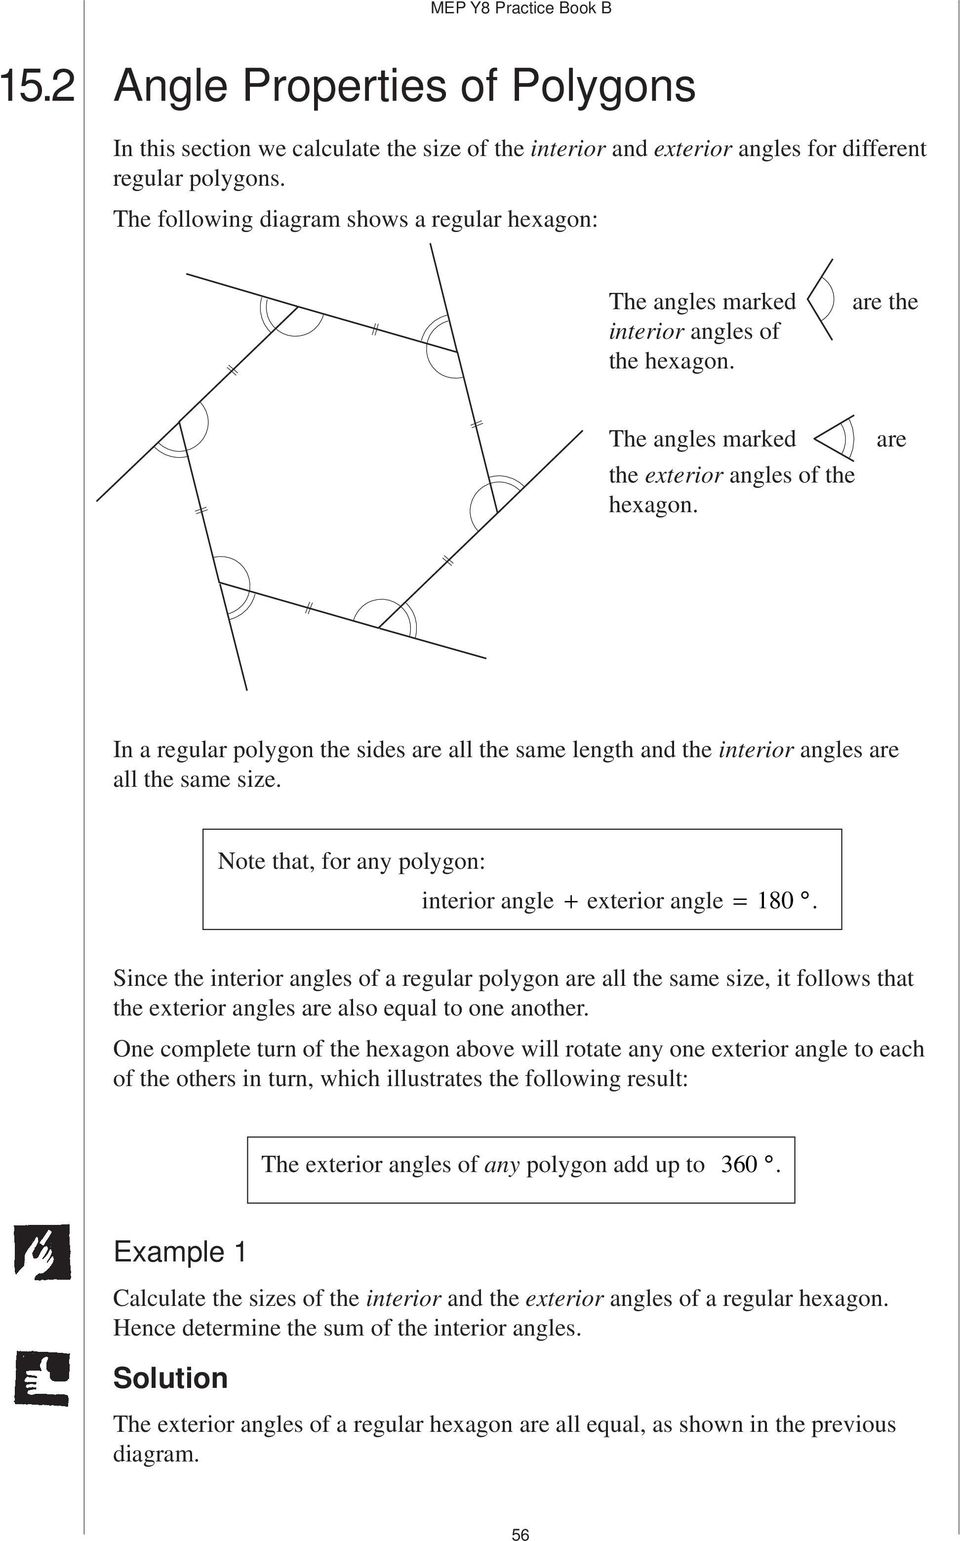 are In a regular polygon the sides are all the same length and the interior angles are all the same size. Note that, for any polygon: interior angle + exterior angle = 180.